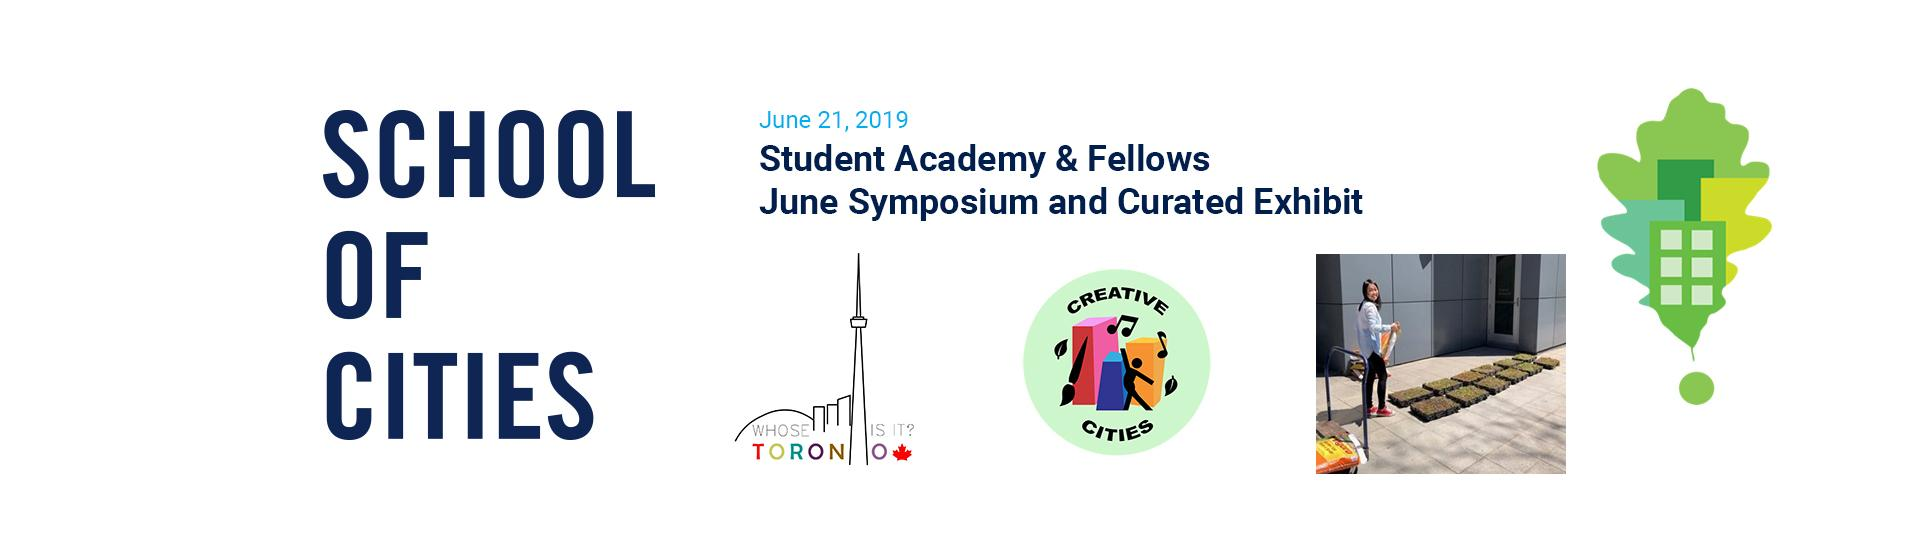 Academy and Fellows June symposium